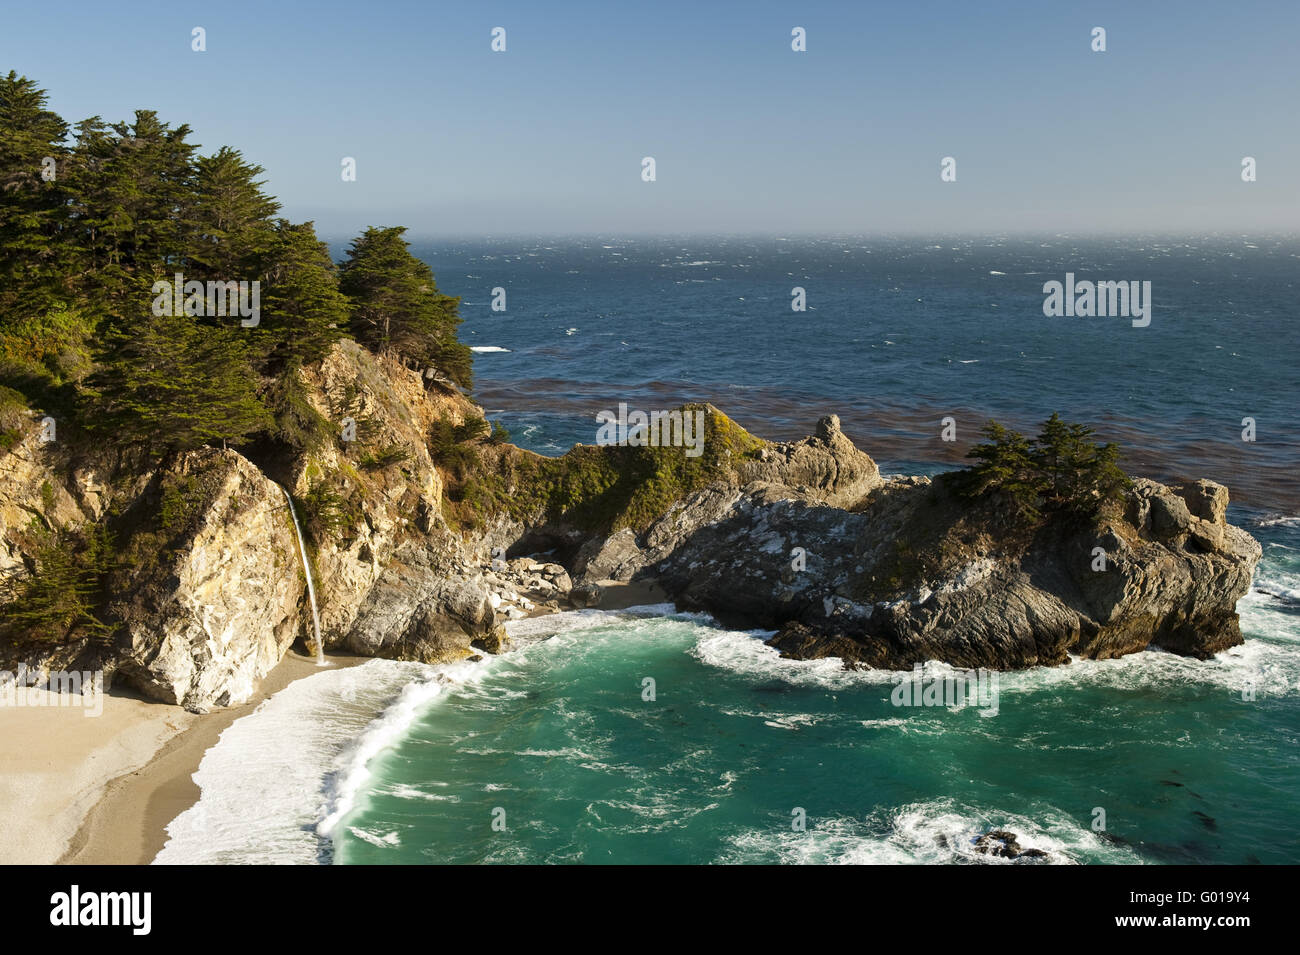 McWay-Cove in Big Sur - Stock Image